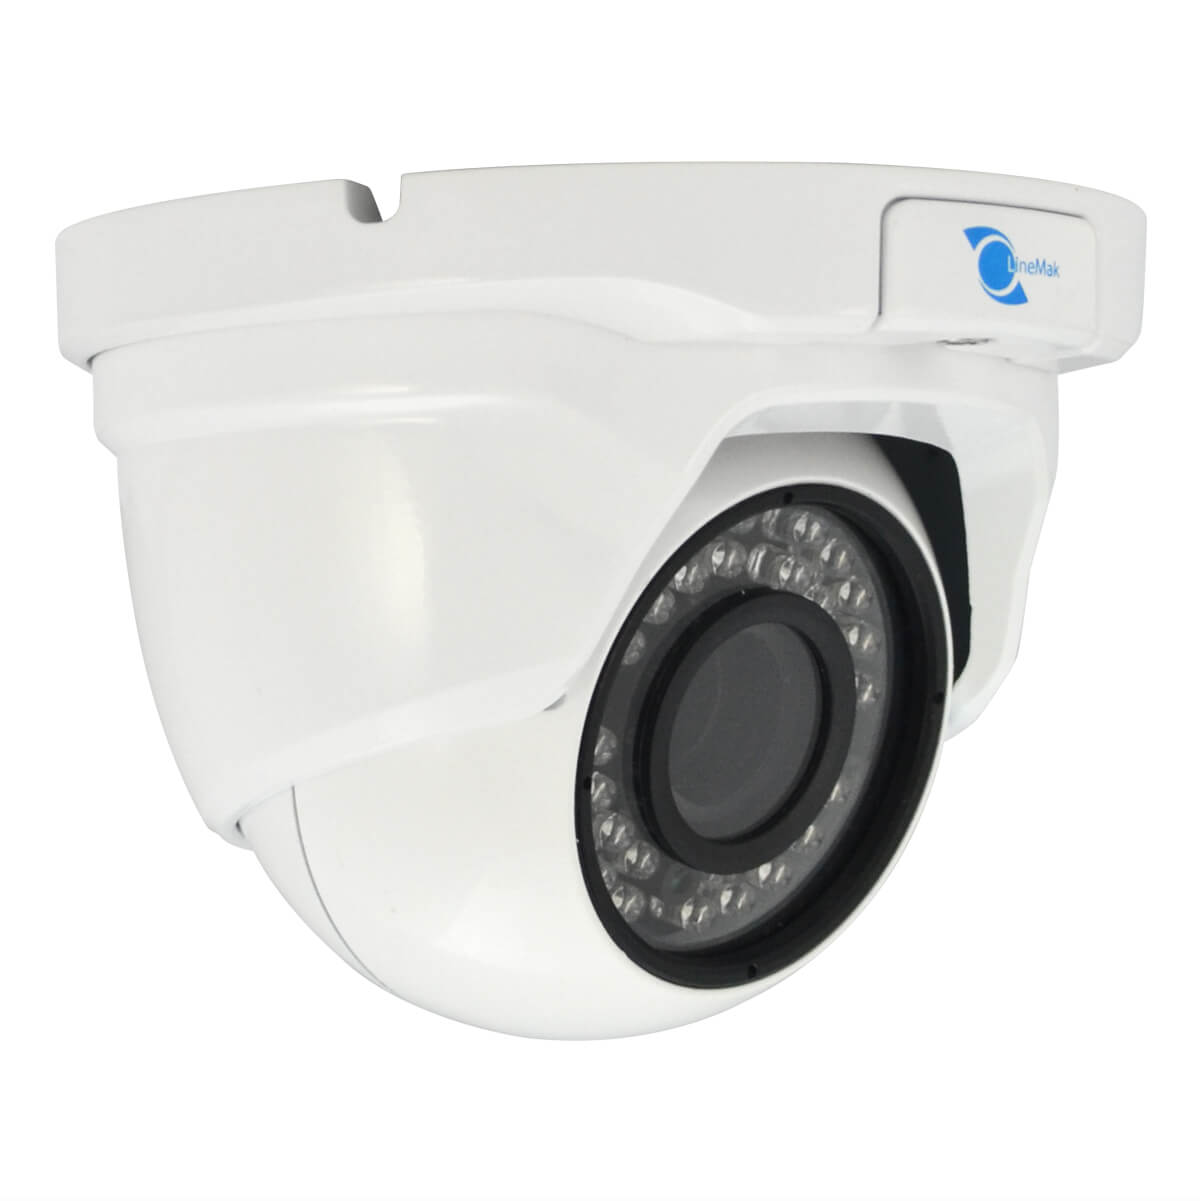 Vandalproof Dome camera, 1/2.8 HDIS Color CMOS Sensor, 1200TVL, 3.6mm